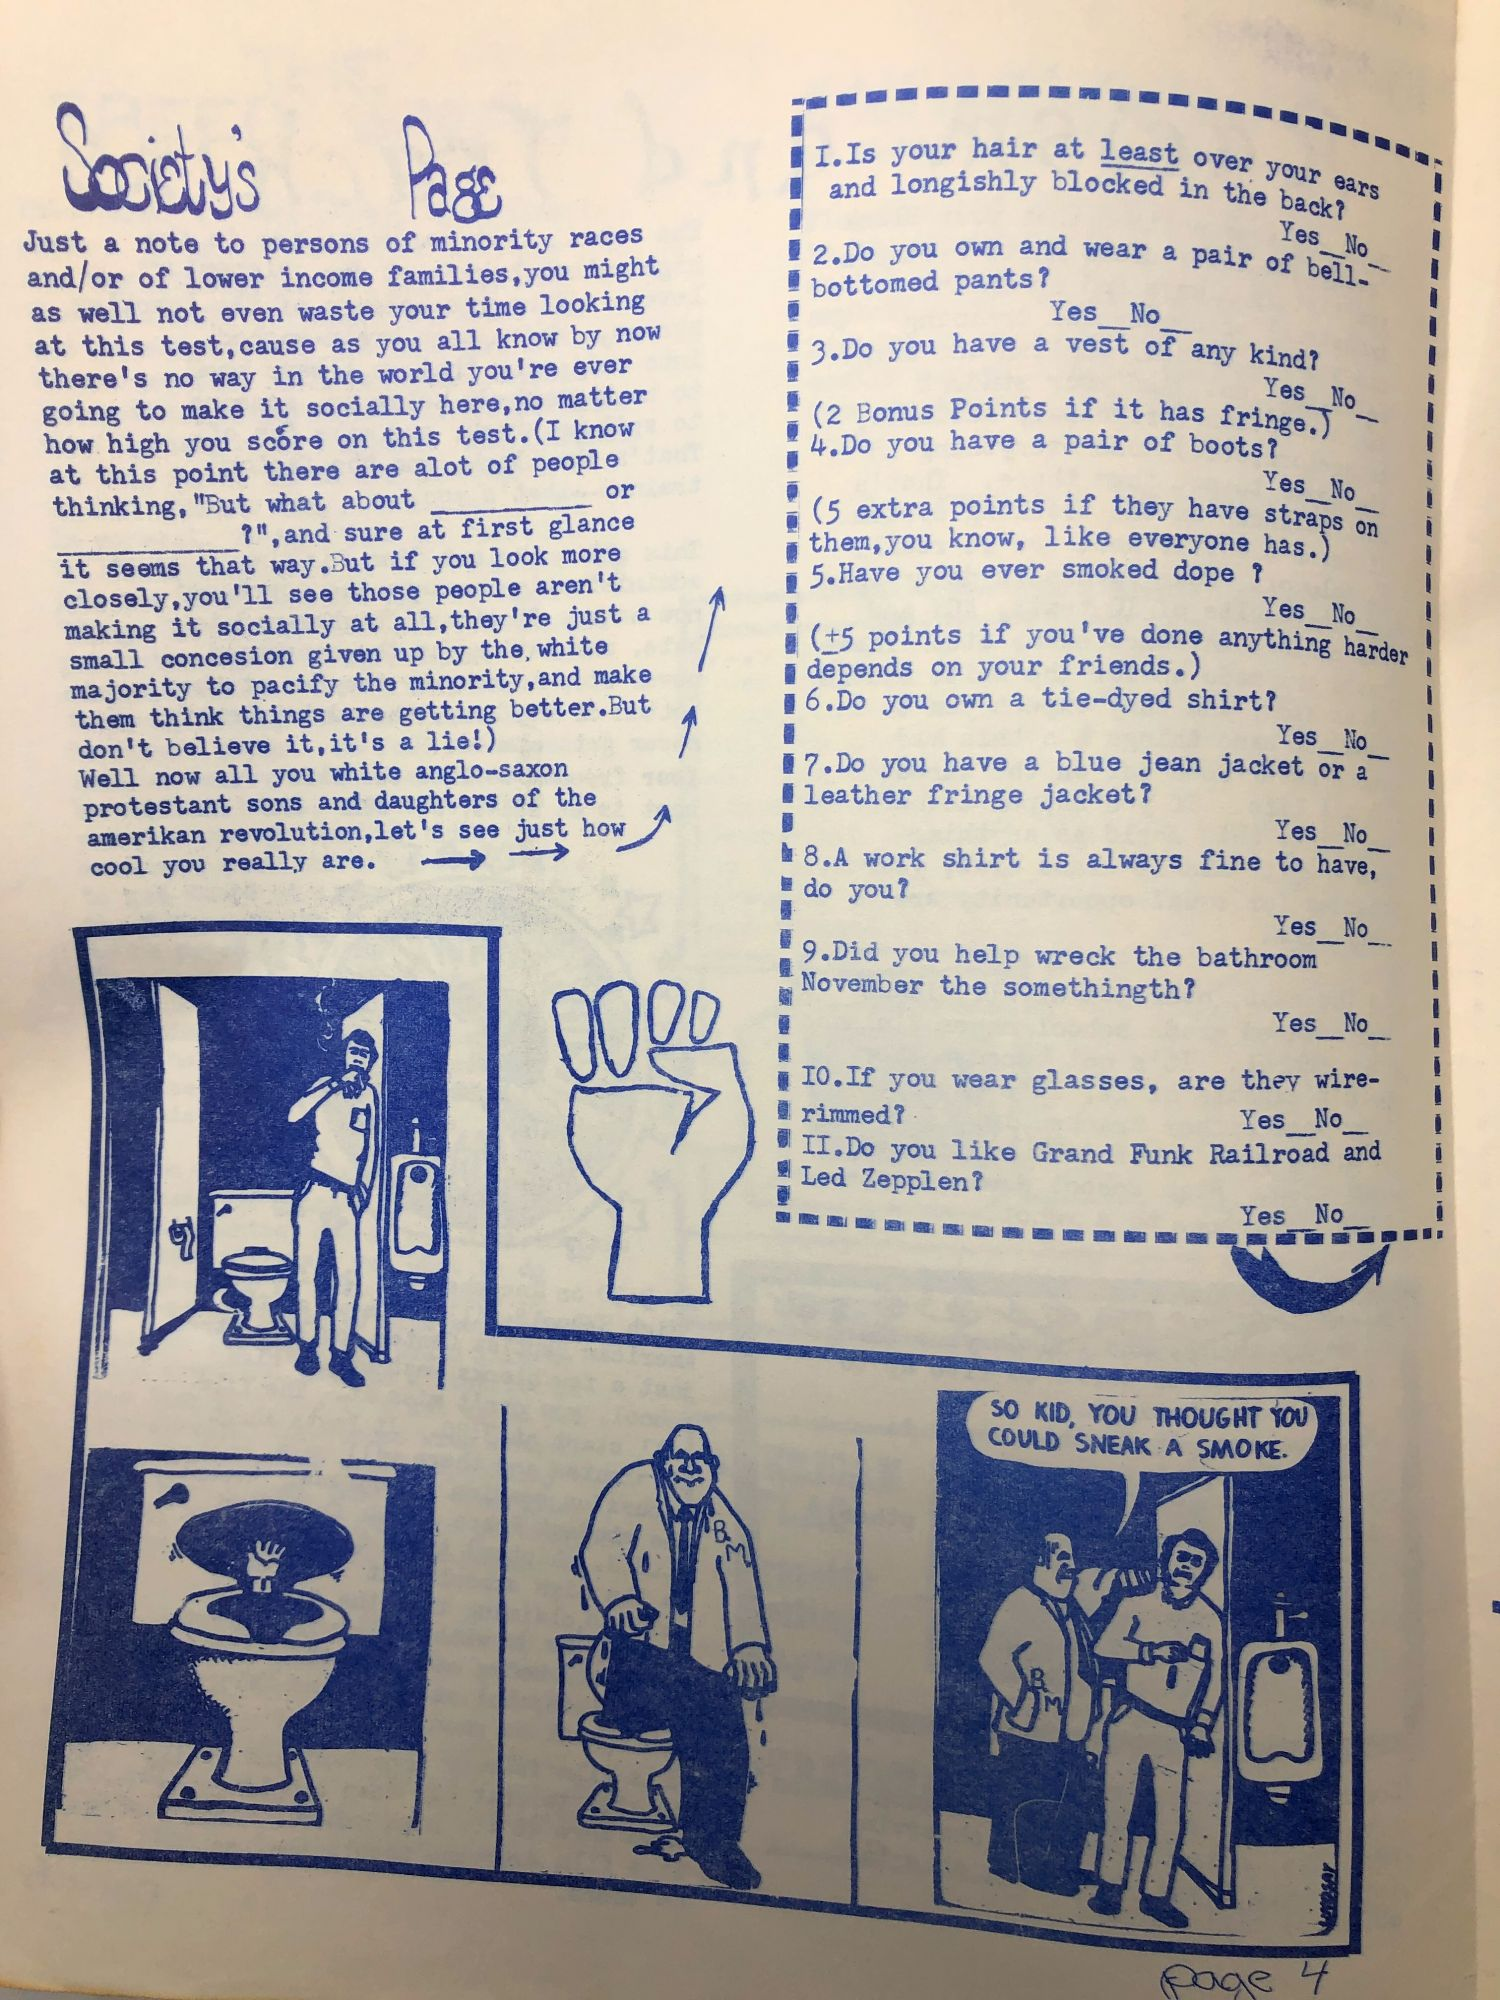 Lawrence, Kansas Radical Student Newspaper, Seven Issues Freed Speak,  Issues 1 and 2, Students Free Press, Vol  1, Issues 1-4 on Underground Books